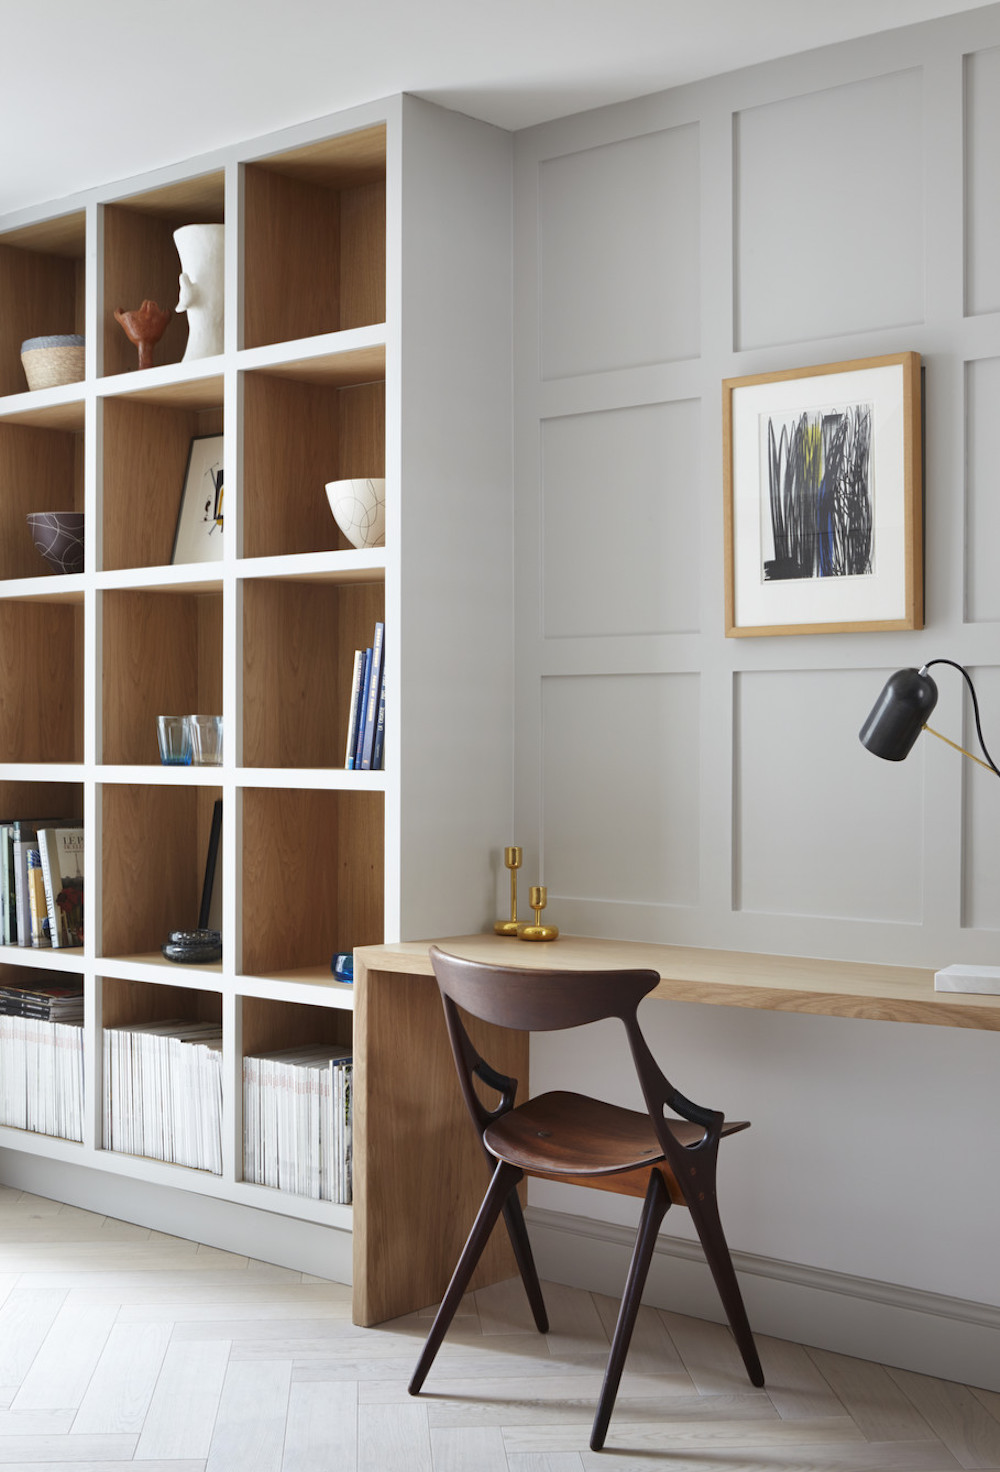 Bespoke fitted workspace || Natural timber in interiors - FIRST SENSE